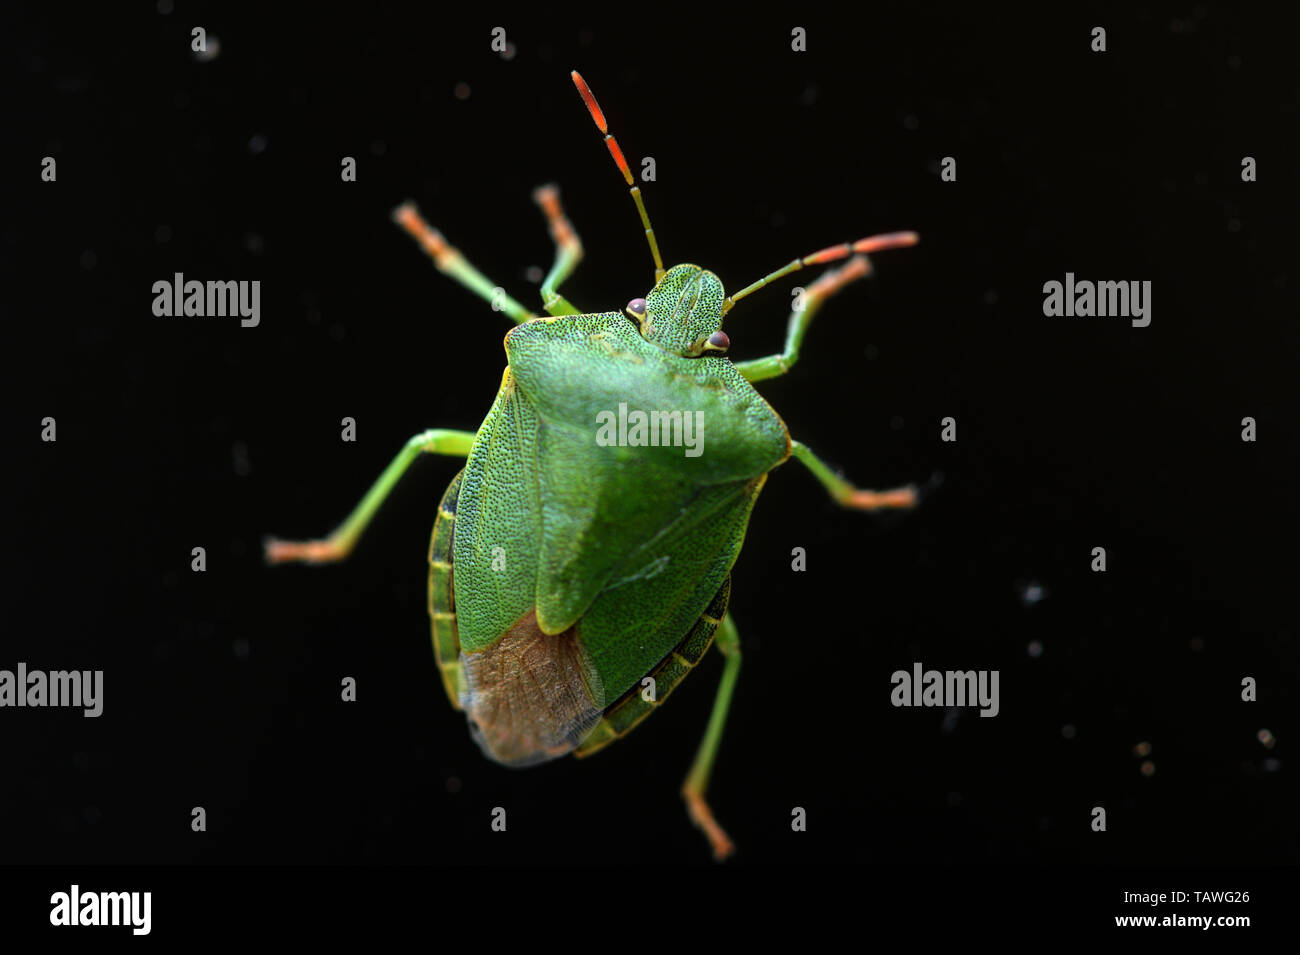 Green Shield Bug in close up showing protective hard wing plates. Stink glands are found on the underside. - Stock Image